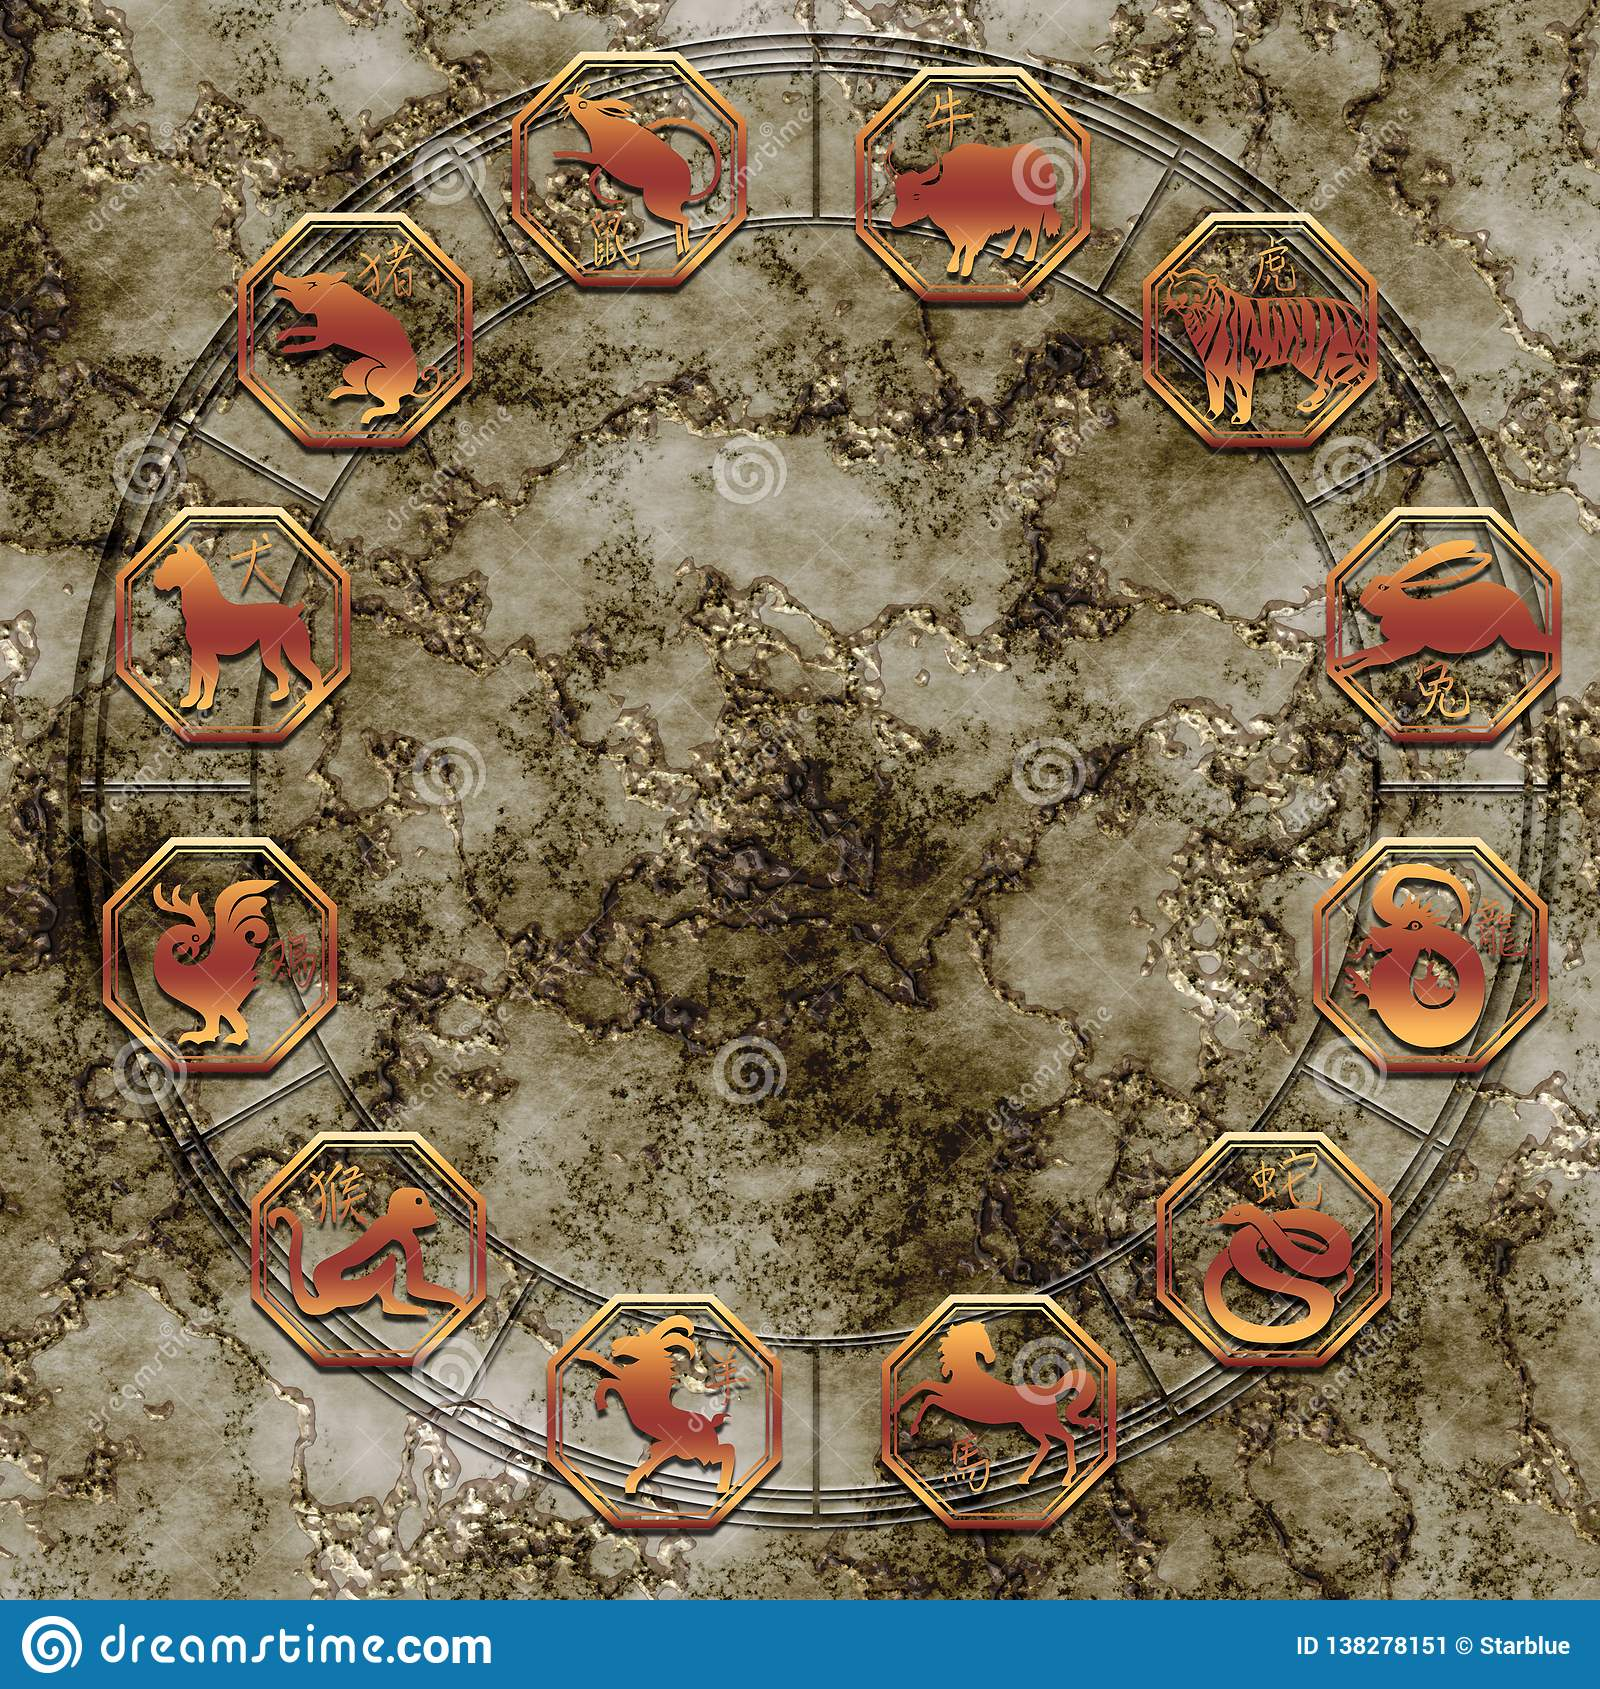 Chinese astrology zodiac signs like china esoteric concept